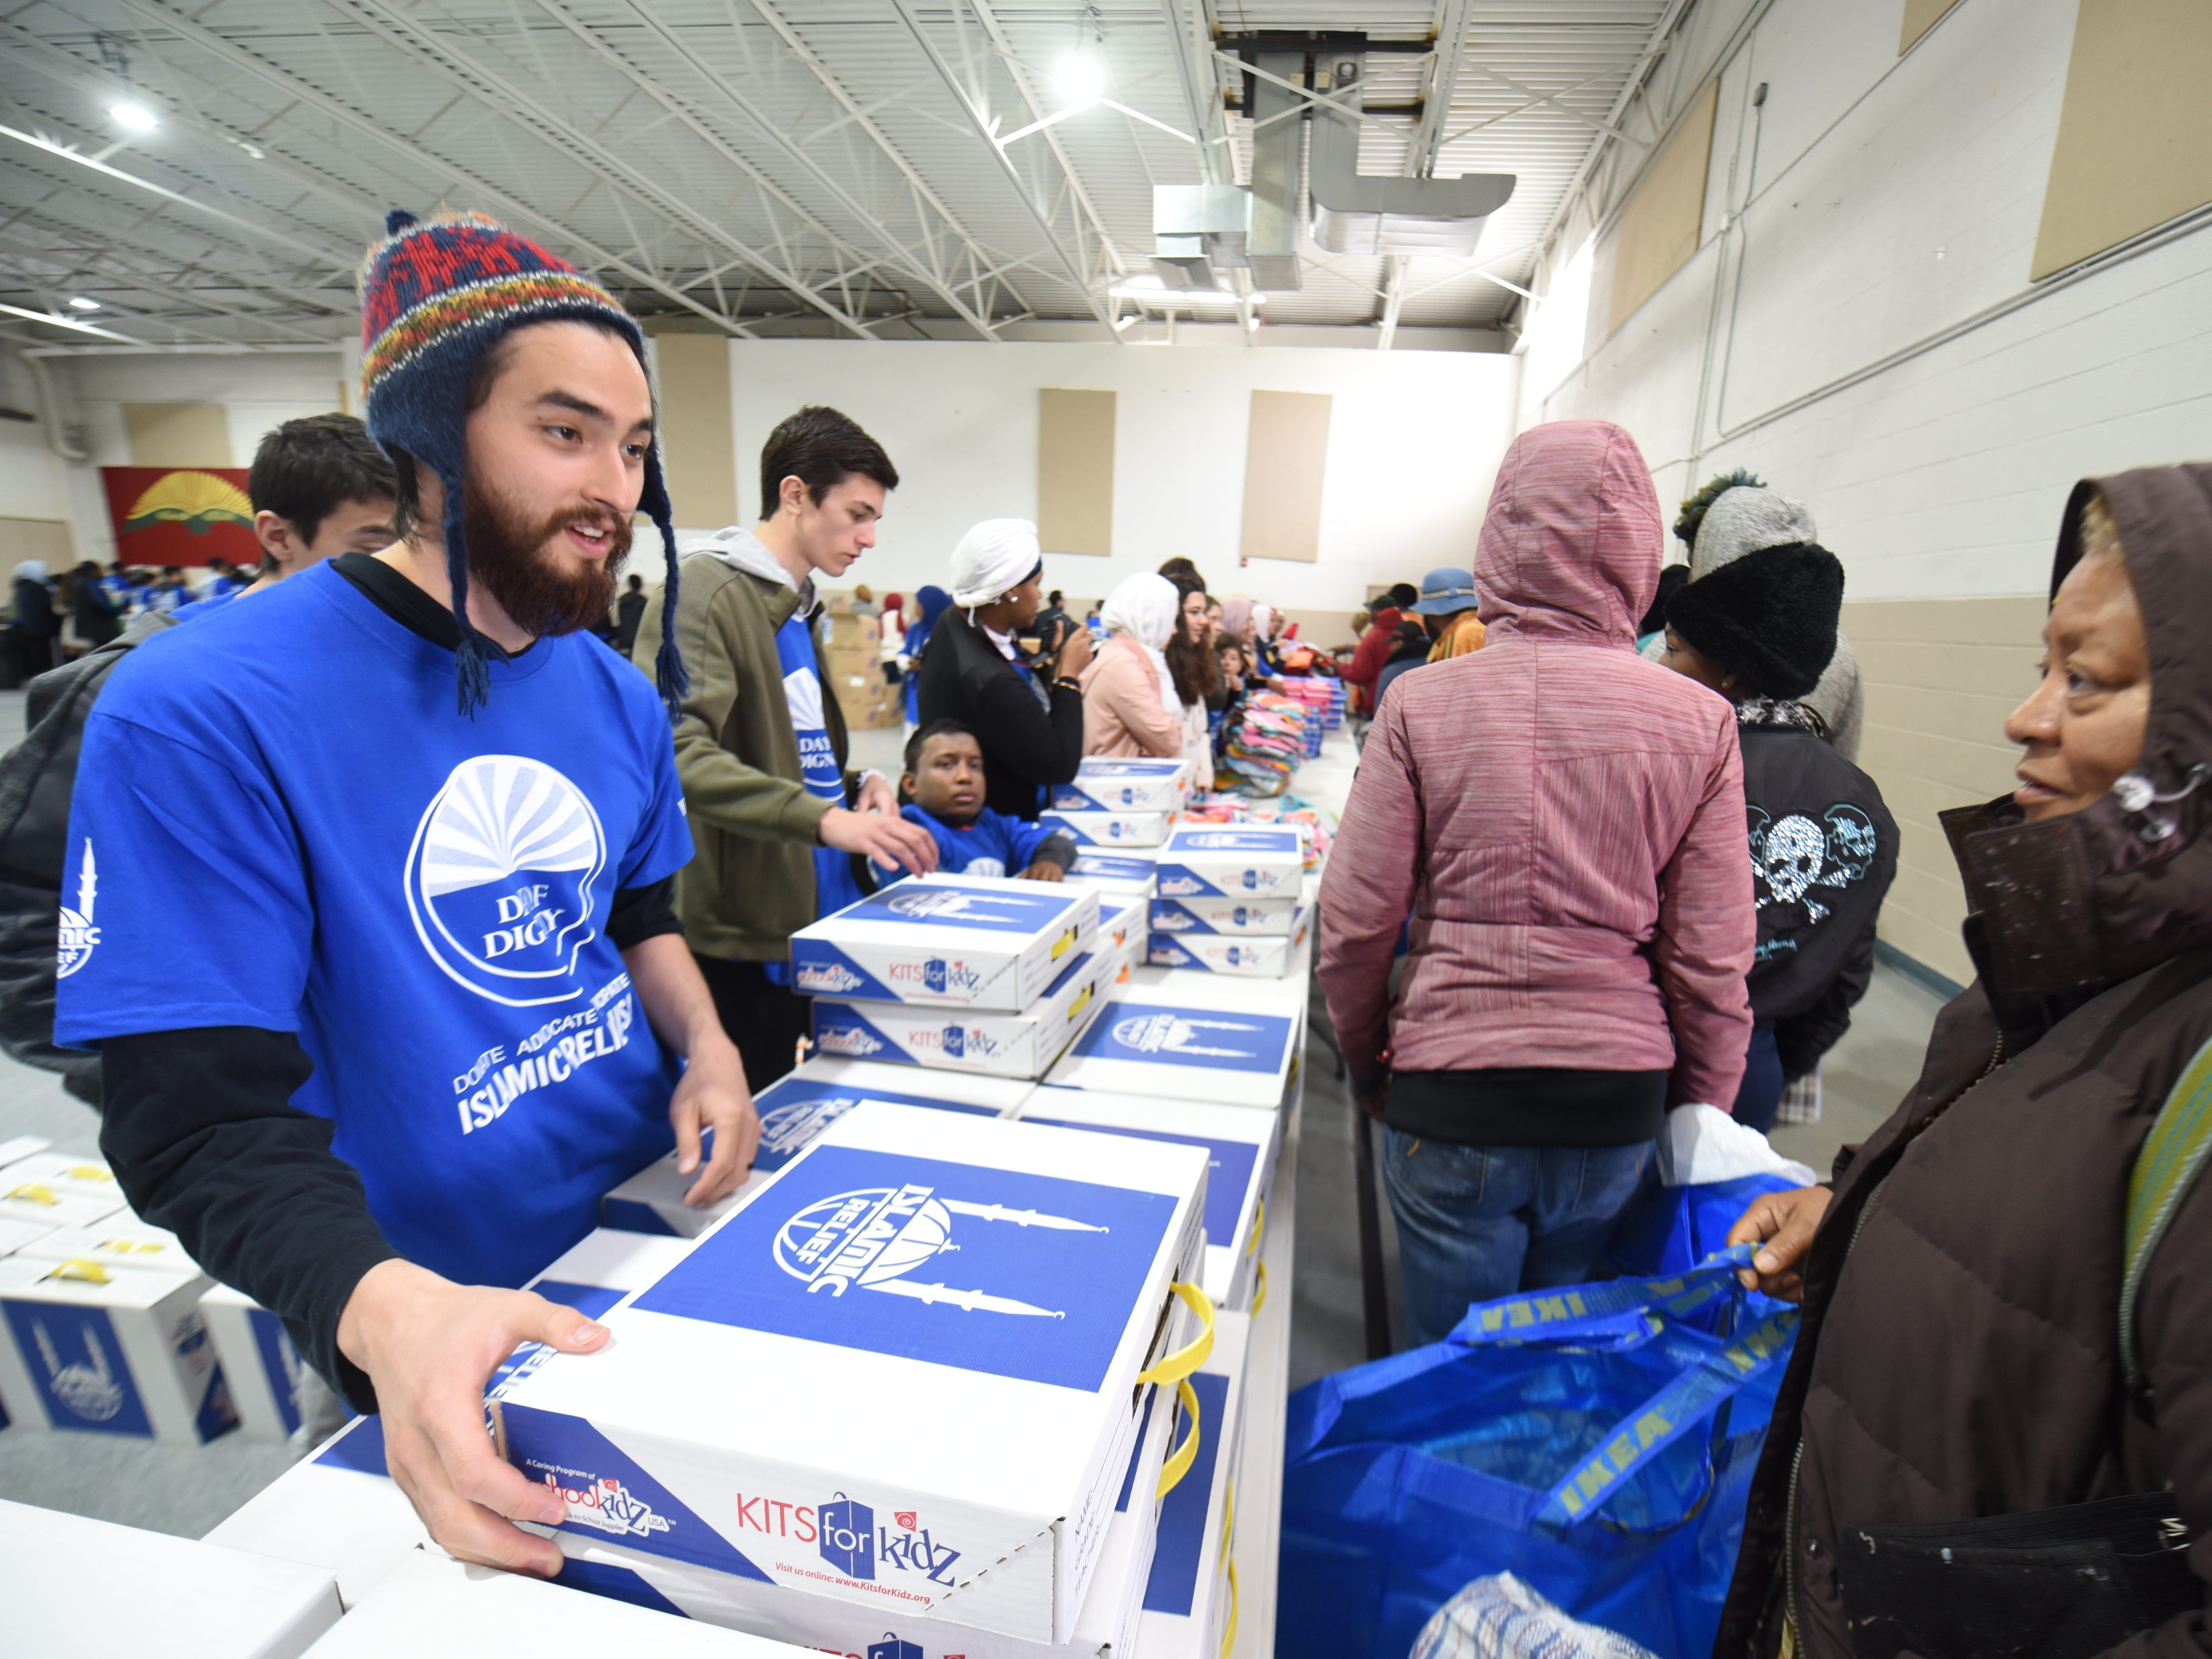 Volunteer Tony Villano (left) assist people during the Islamic Relief USA's Day of Dignity at the Muslim Center Mosque and Community Center in Detroit on Saturday October 20, 2018.